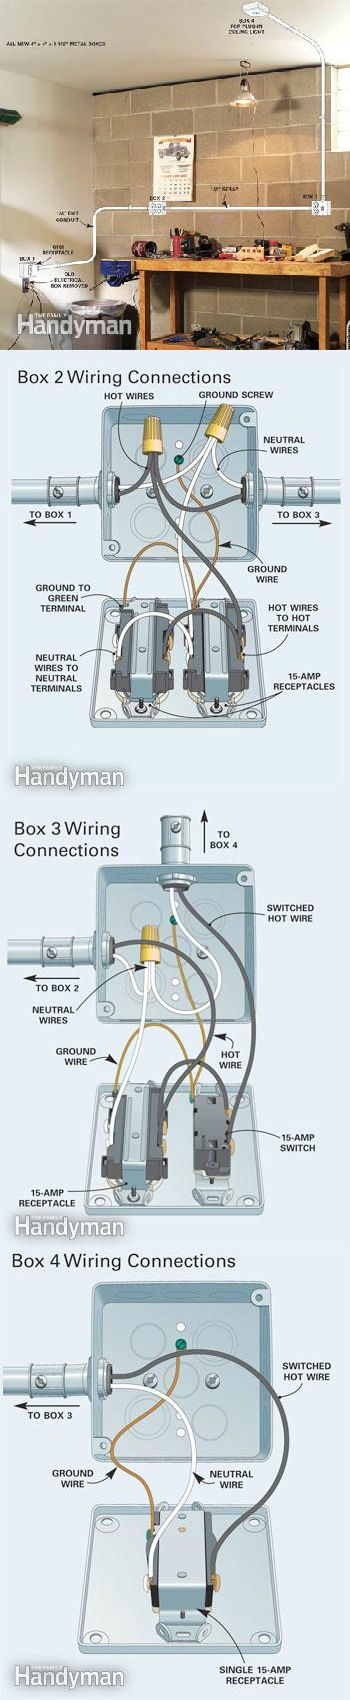 Cool Strat Style Guitar Thick 7 Way Guitar Switch Rectangular How To Rewire An Electric Guitar Ibanez 3 Way Switch Youthful Tsb Database BlueSchematic For Solar Panel System How To Install Surface Mounted Wiring And Conduit | Metals ..